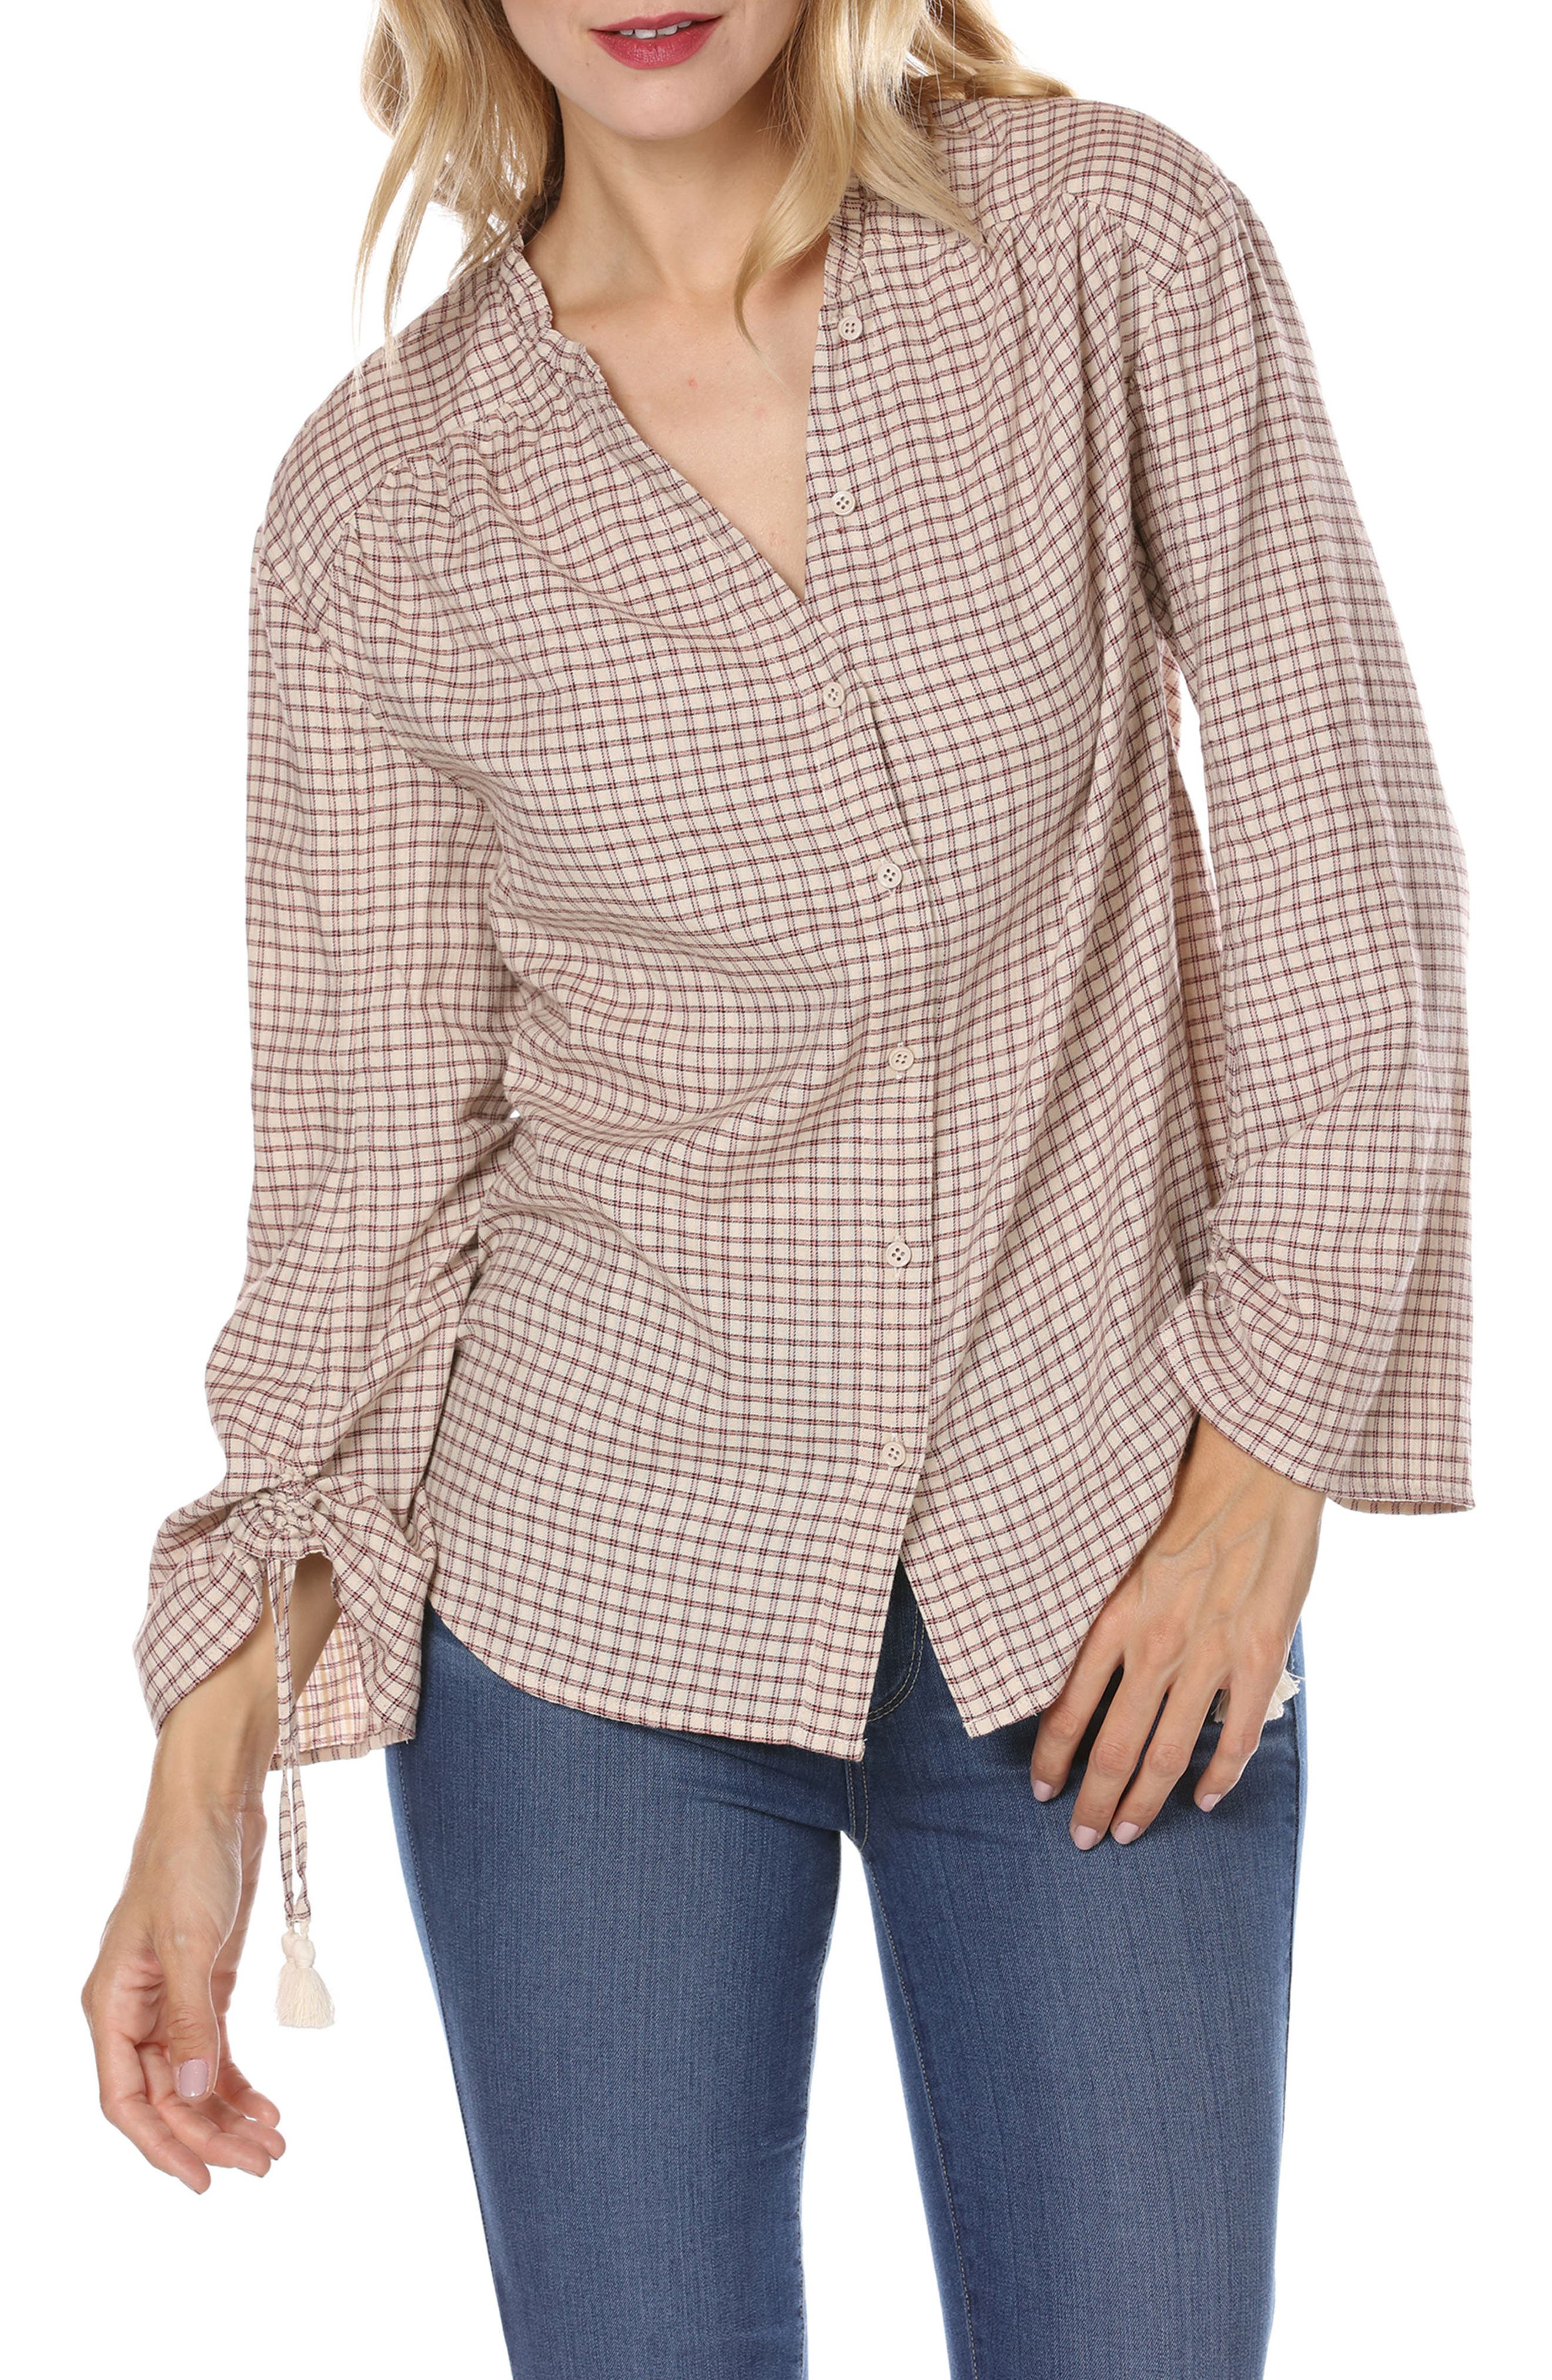 Torin Check Blouse,                         Main,                         color, Sandy Shell/ Spice